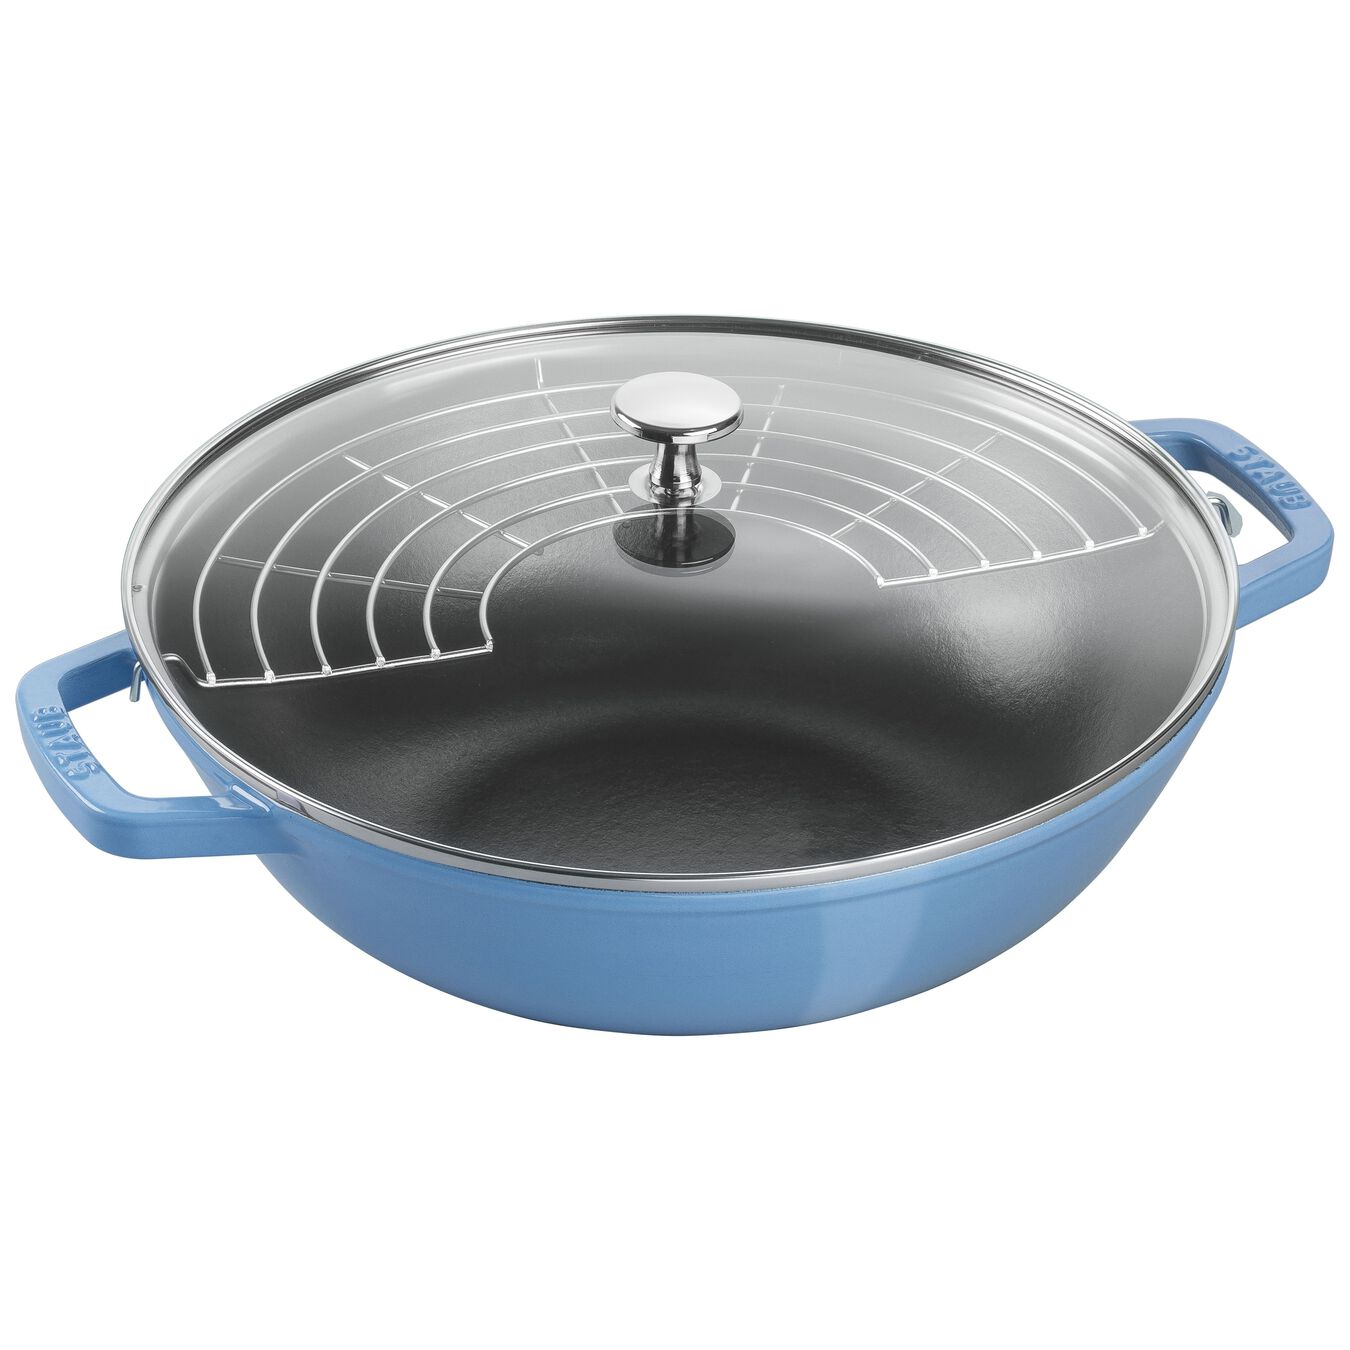 4.5-qt Perfect Pan - Visual Imperfections - French Blue,,large 1